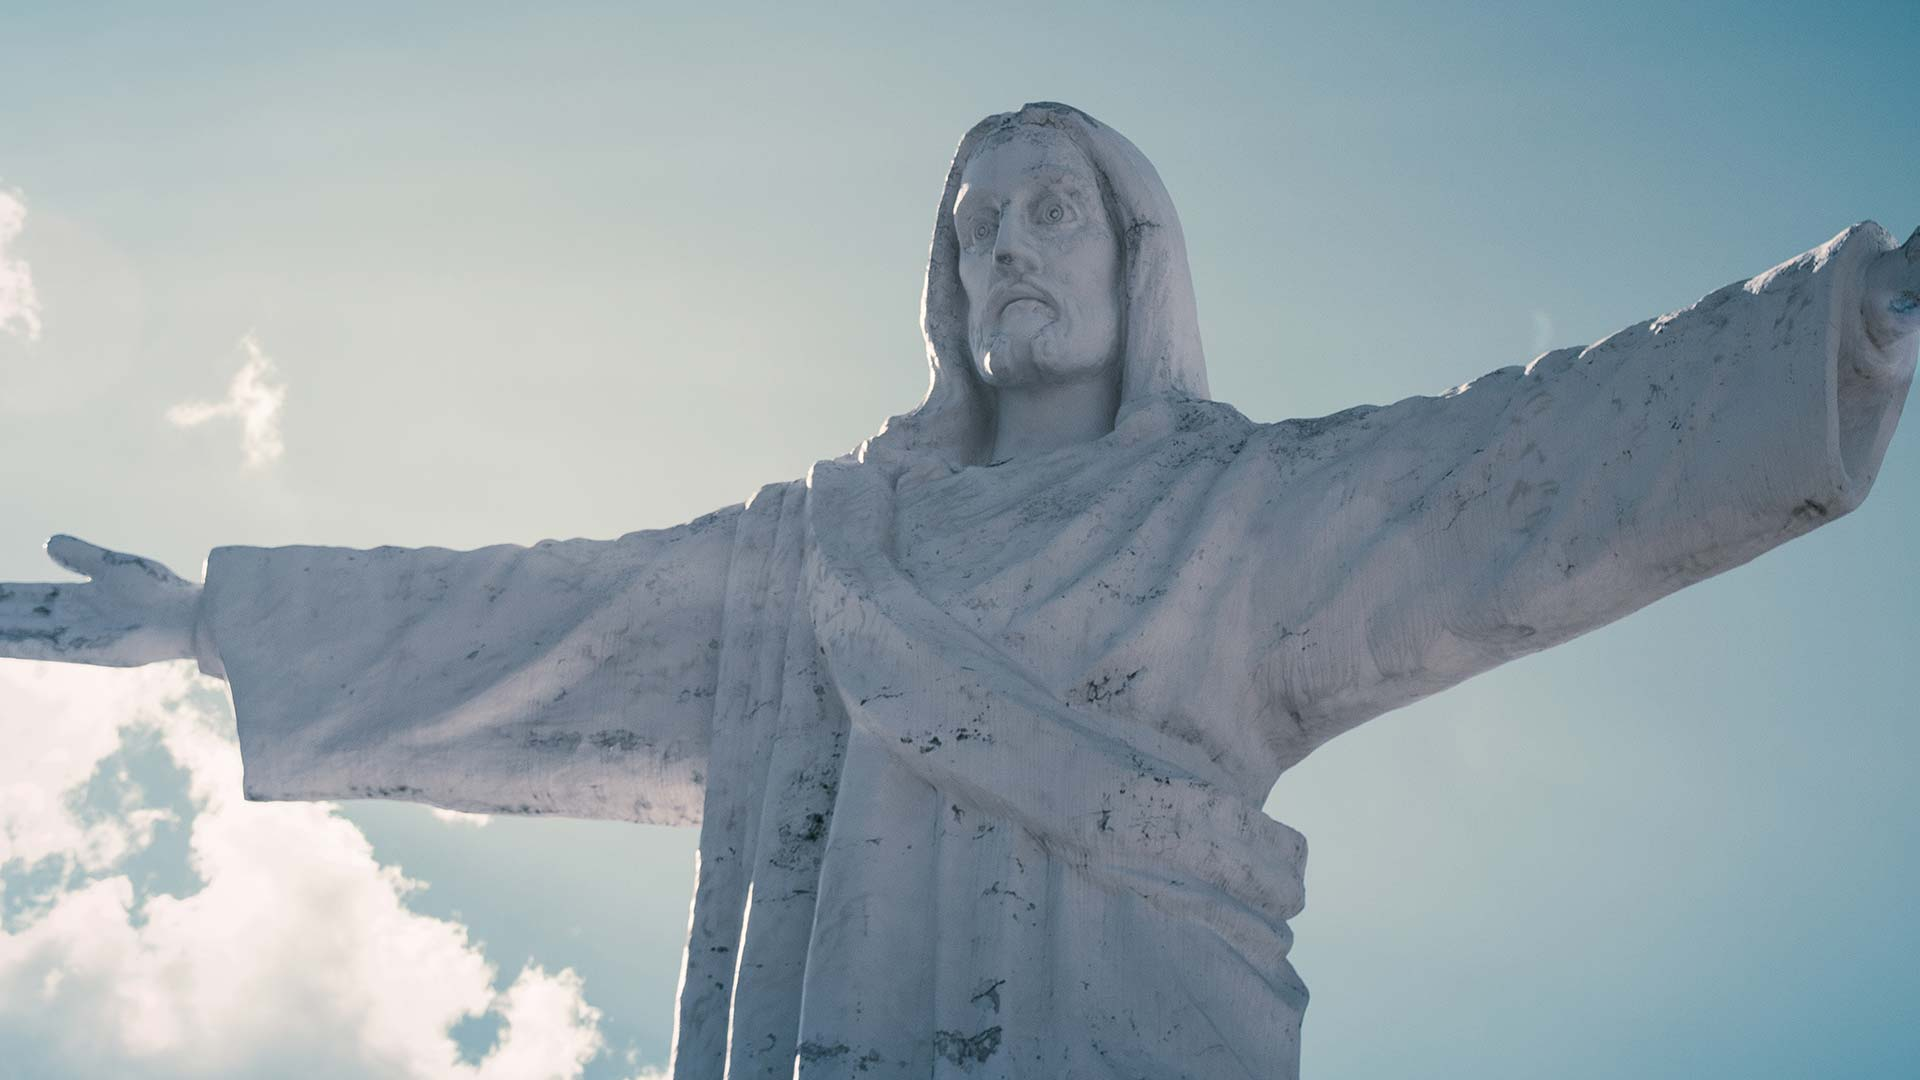 Jesus statue with outstretched hands